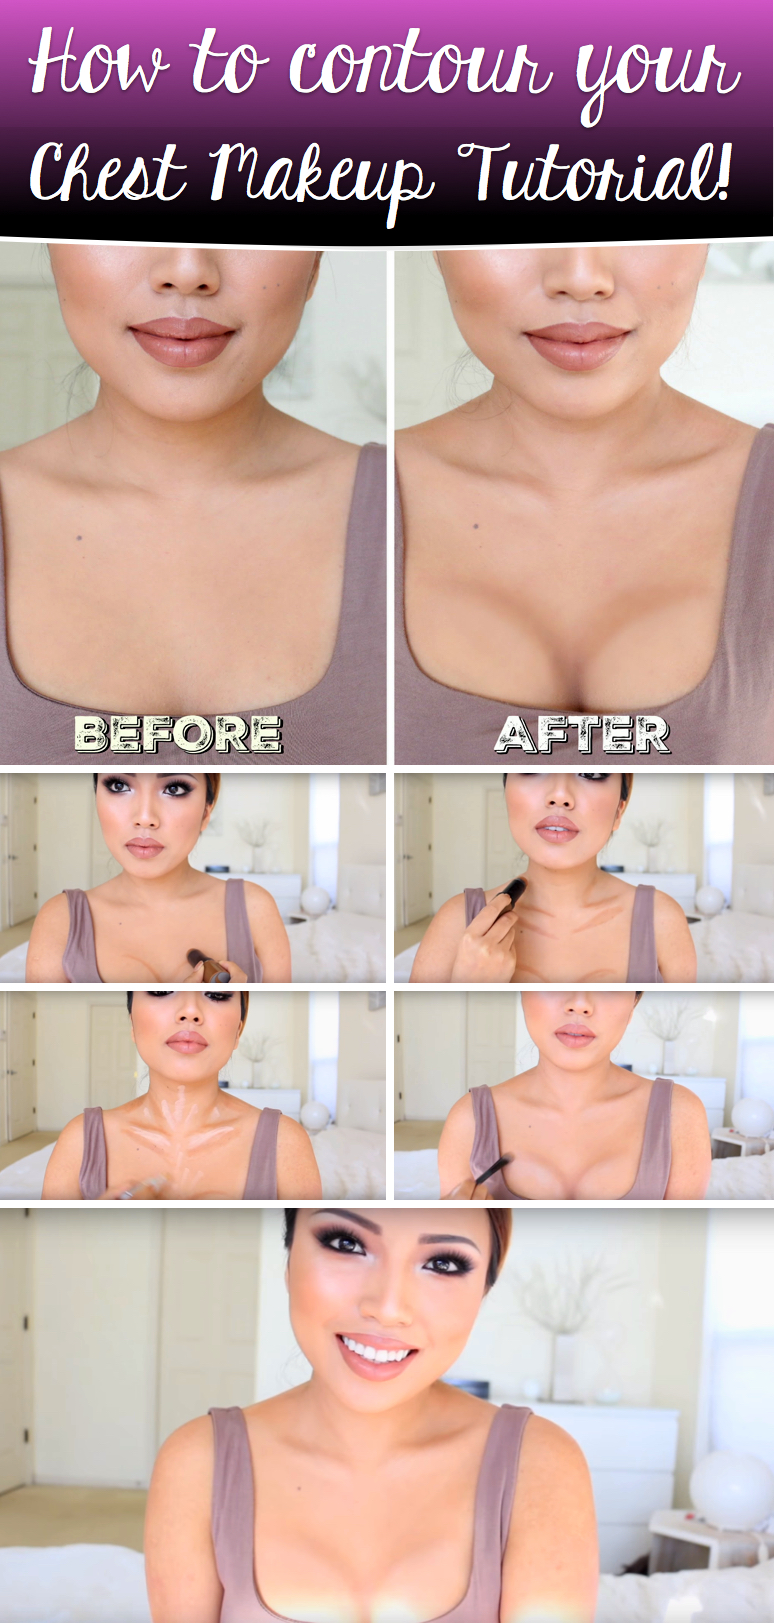 How-to-contour-your-Chest-Makeup-Tutorial-cover